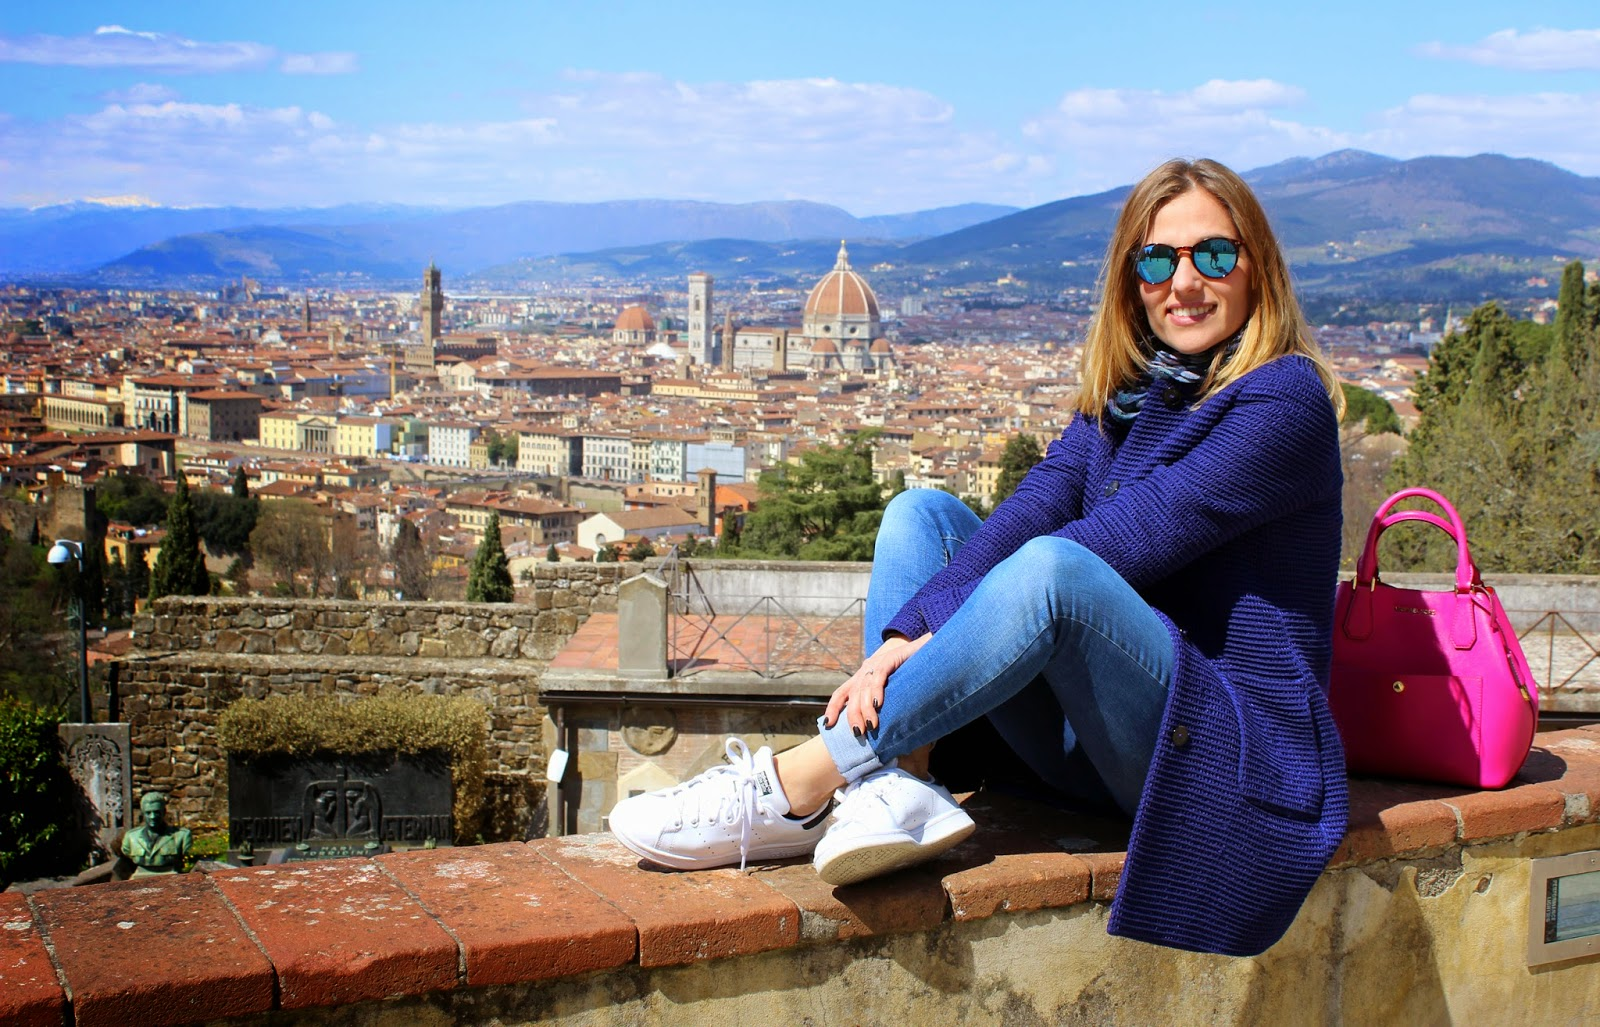 Eniwhere Fashion - Stan Smith - Firenze Piazzale Michelangelo